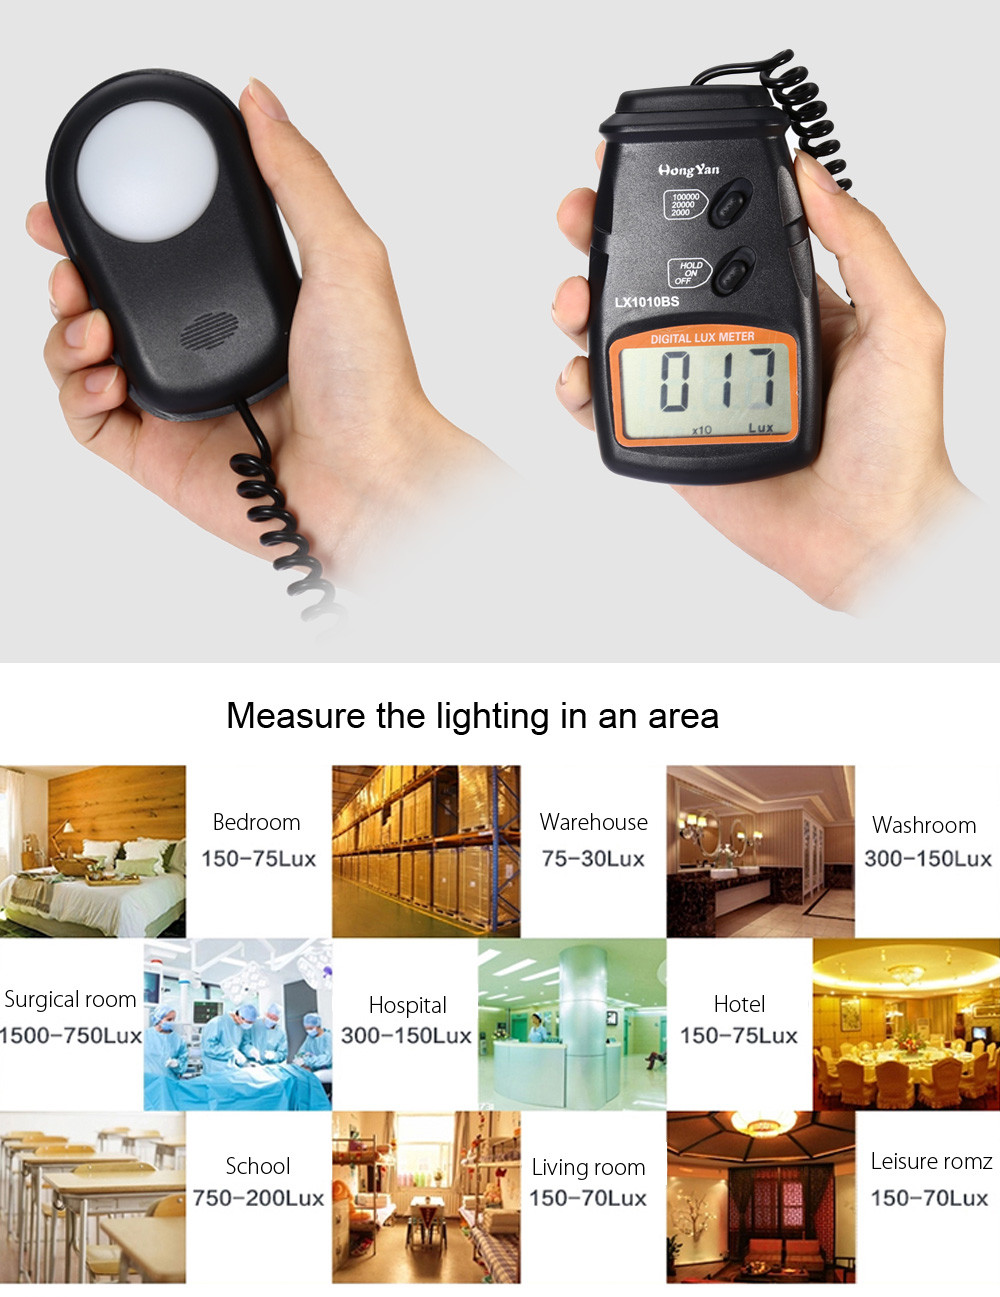 HongYan LX1010BS Digital Luxmeter Light Meter with LCD Display / 100000 Lux